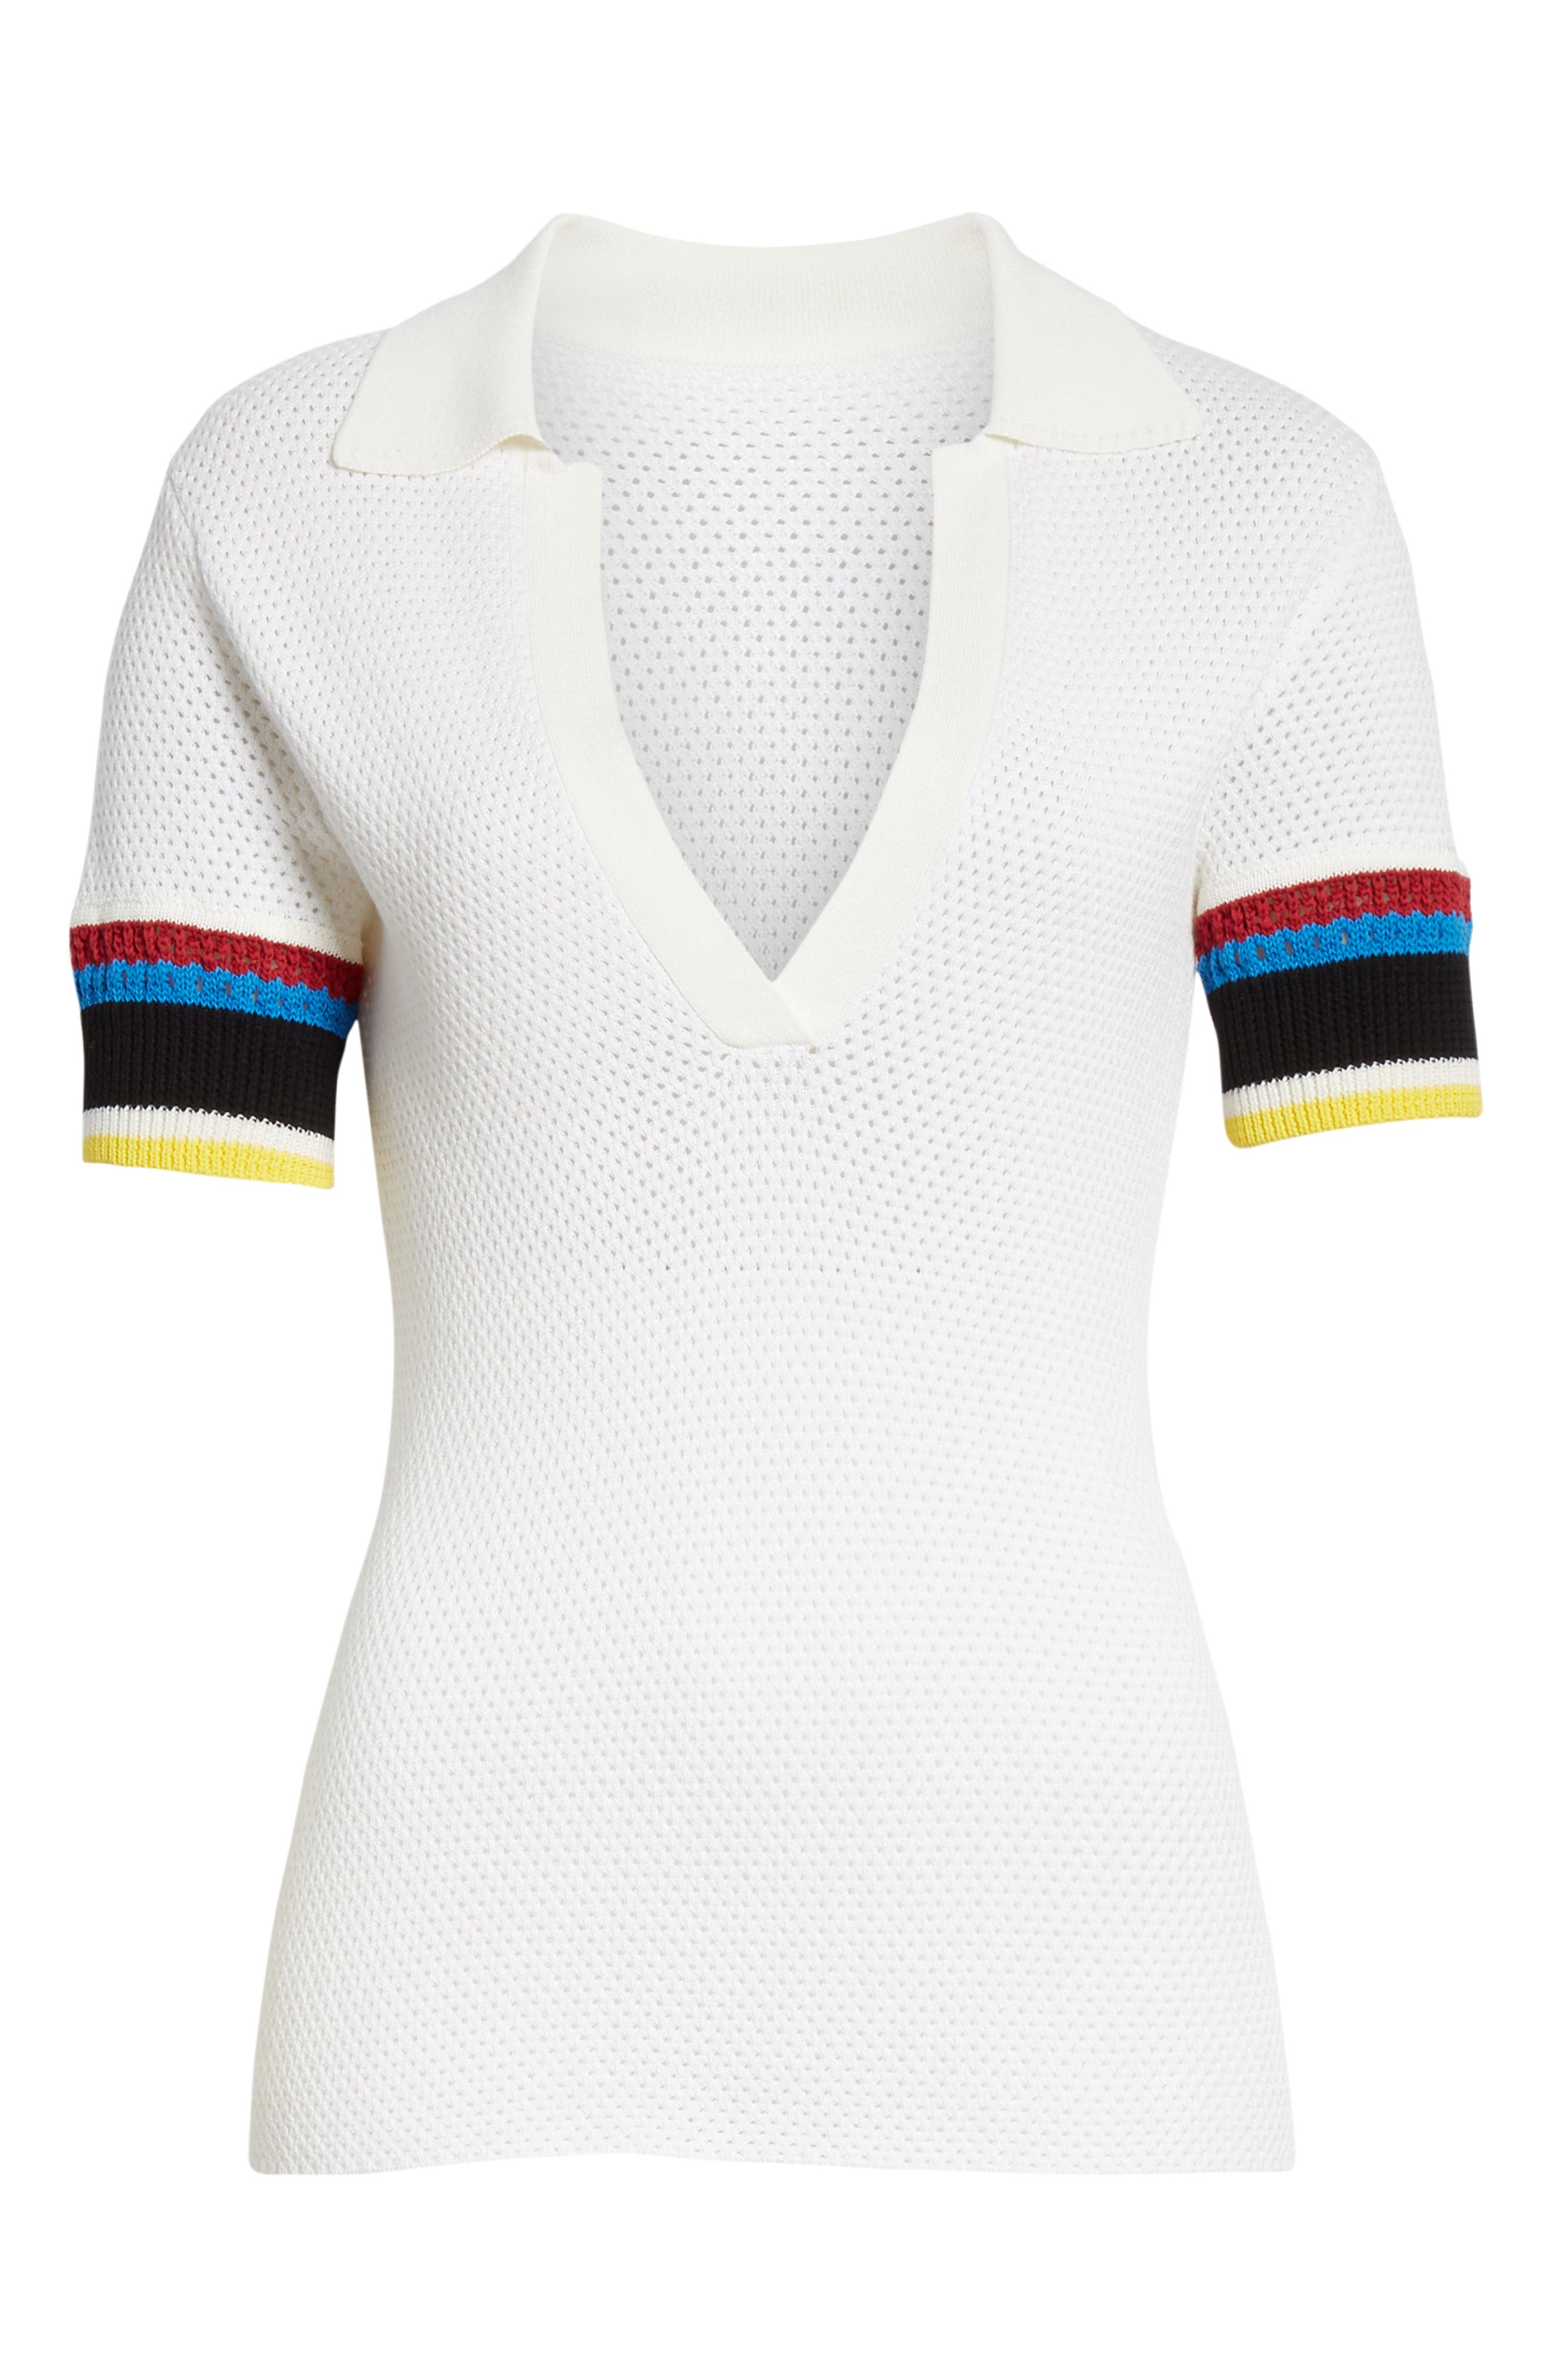 PROENZA SCHOULER, PSWL Stripe Sleeve Polo Top, Alternate thumbnail 6, color, OFF WHITE